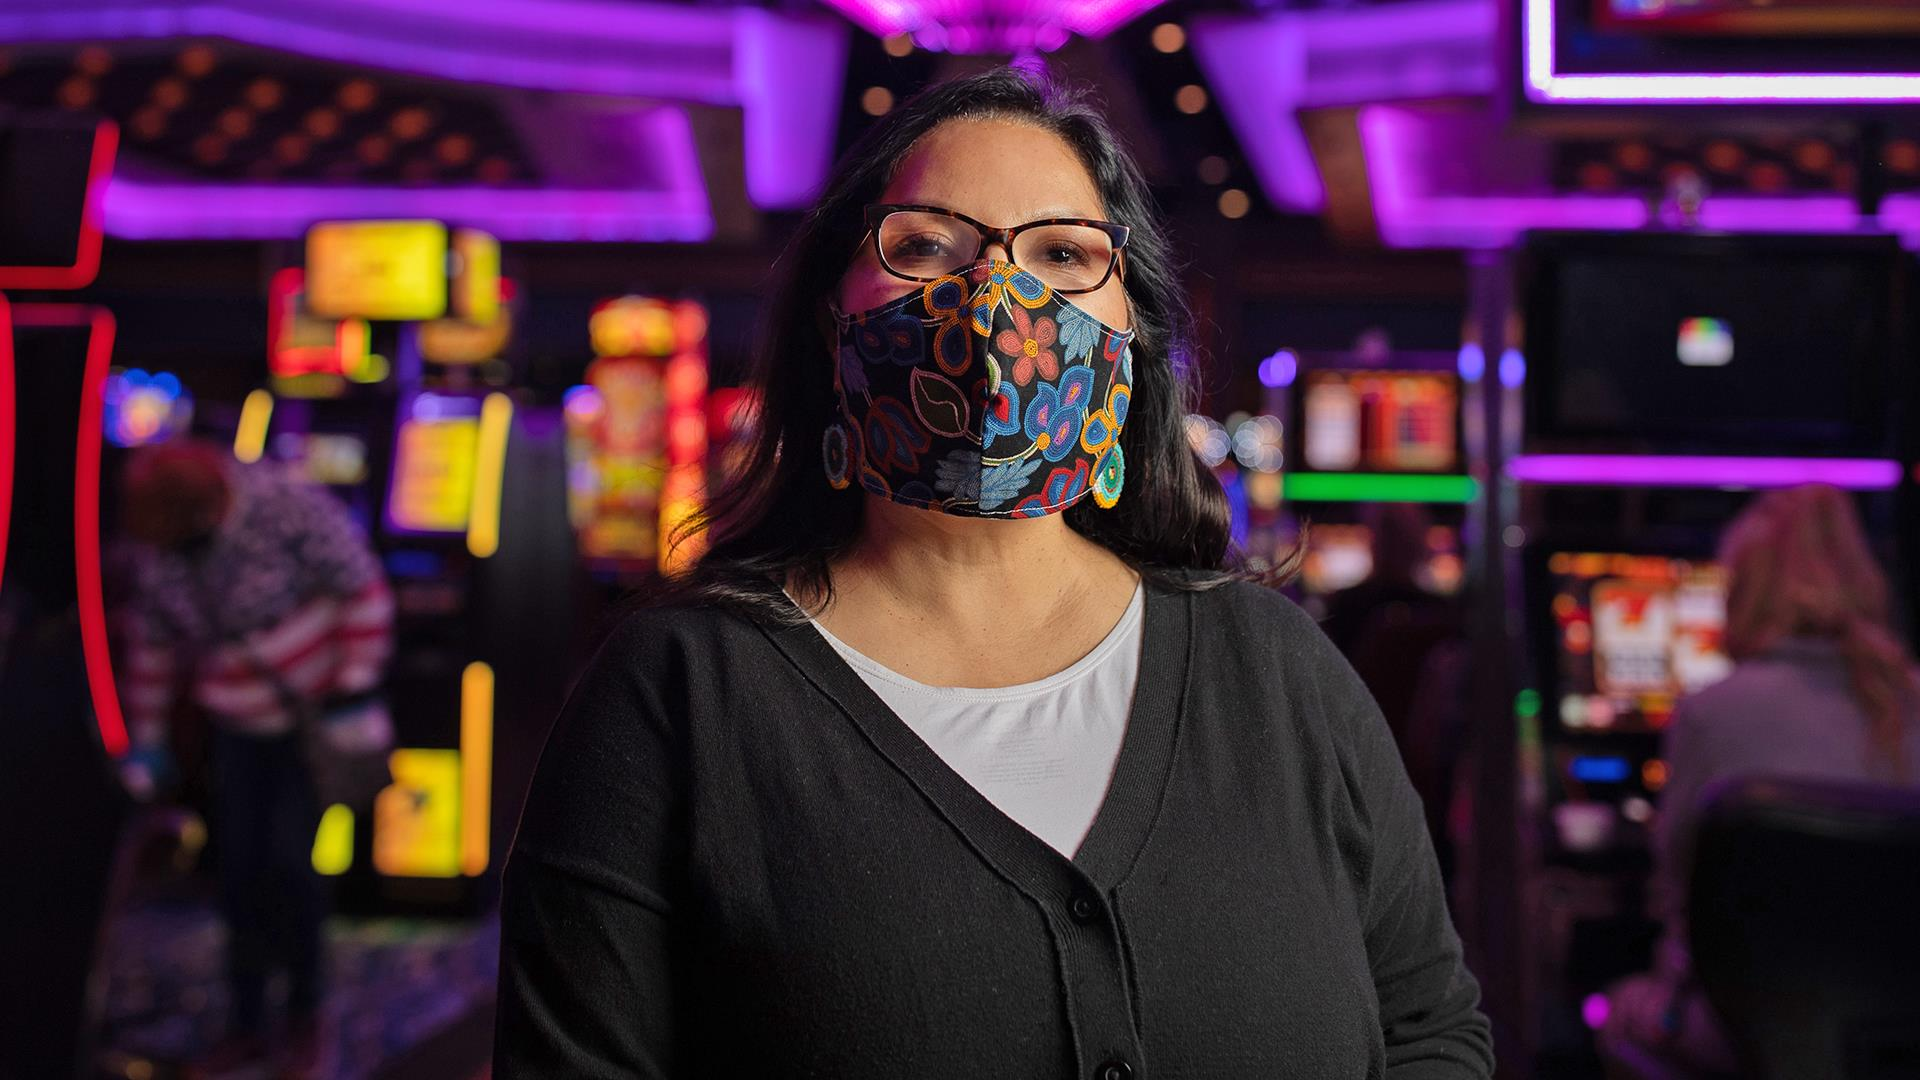 Masks required, fewer games, buffet closed: Idaho casino offers ...